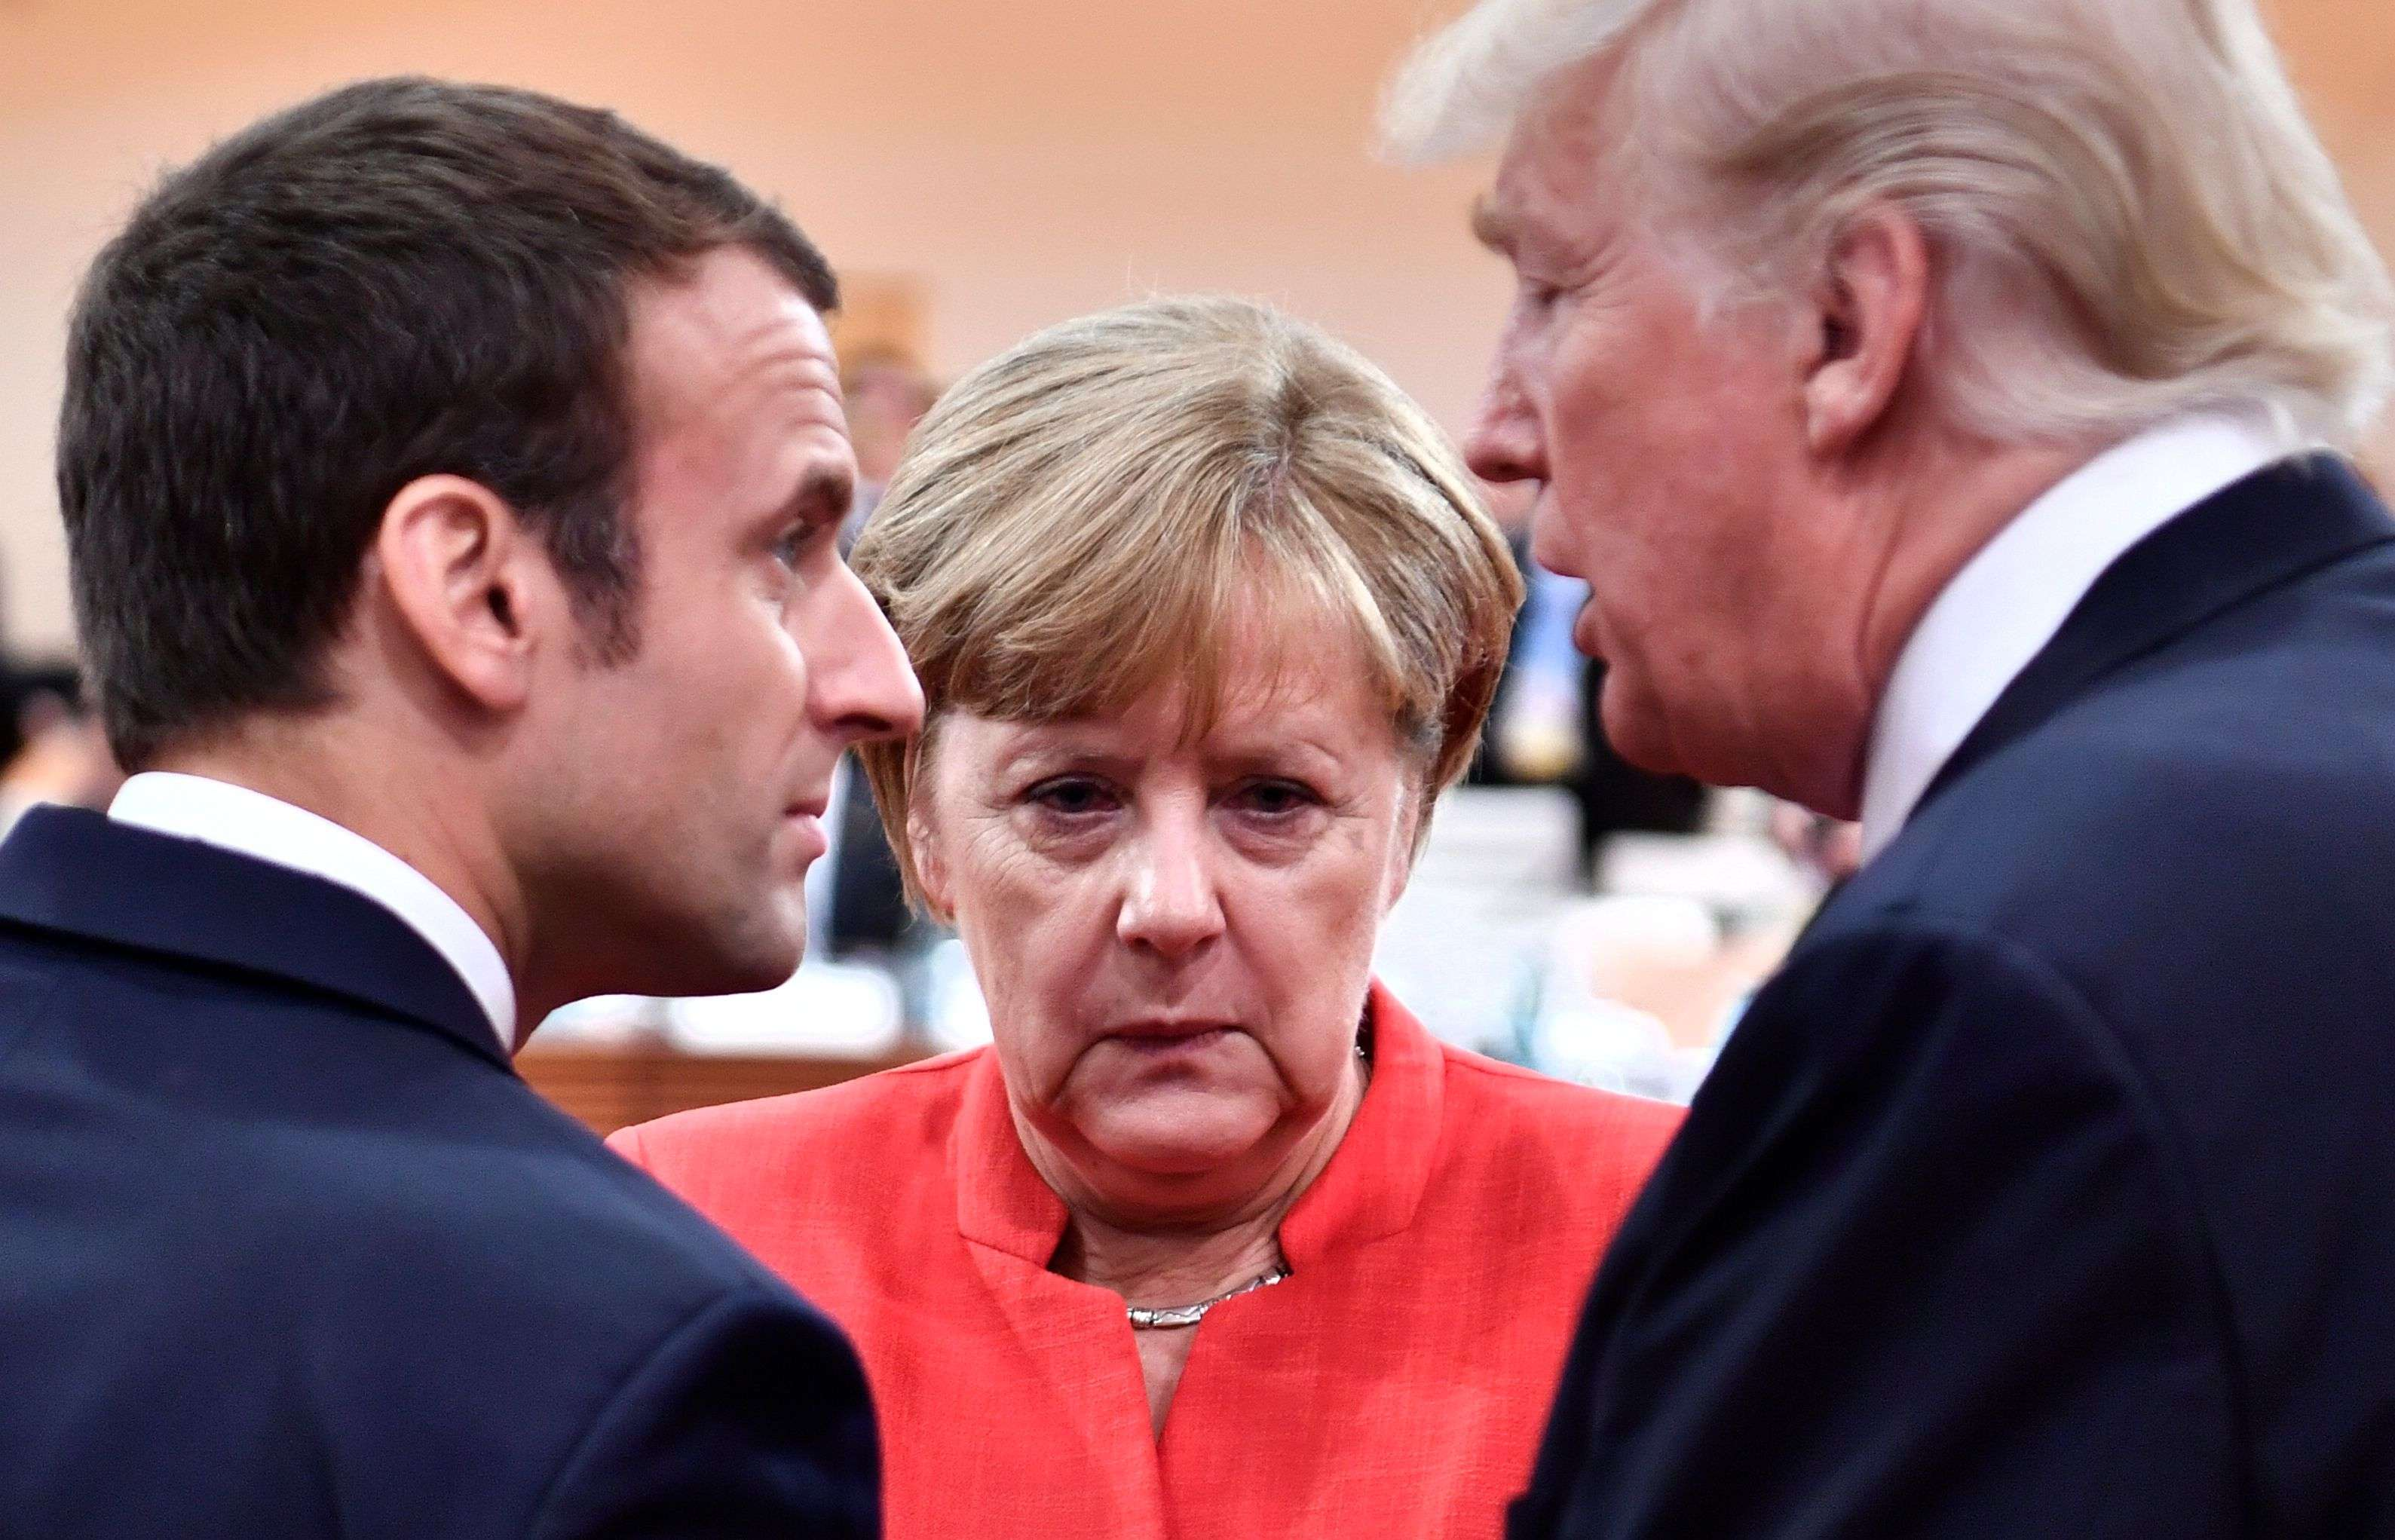 French President Emmanuel Macron (L), German Chancellor Angela Merkel (C) and US President Donald Trump confer at the start of a working session of the G20 meeting in Hamburg, last July. (AFP)